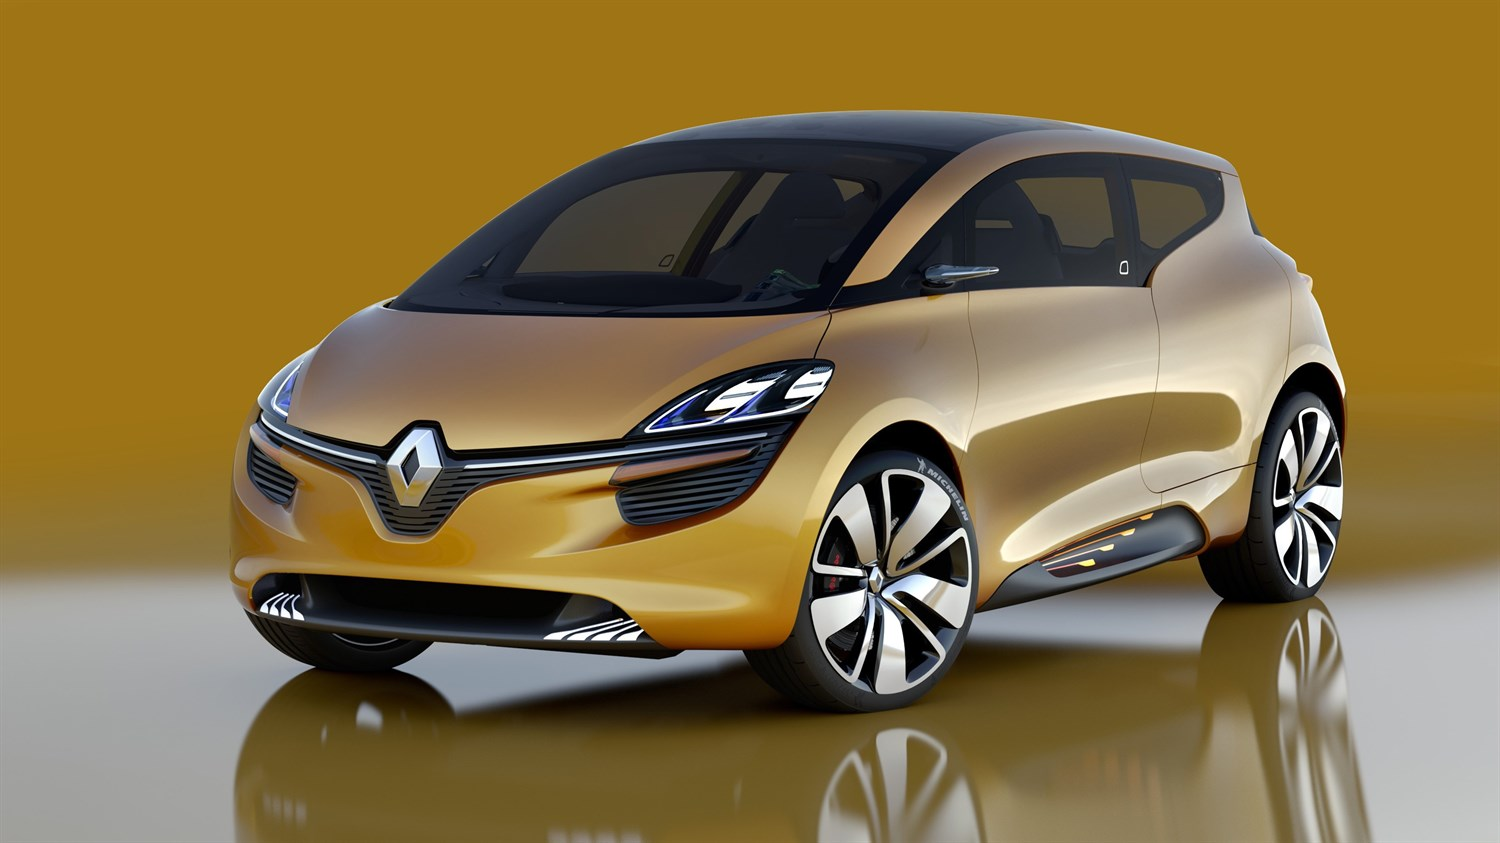 Renault R-SPACE Concept - 3/4 front view on yellow background